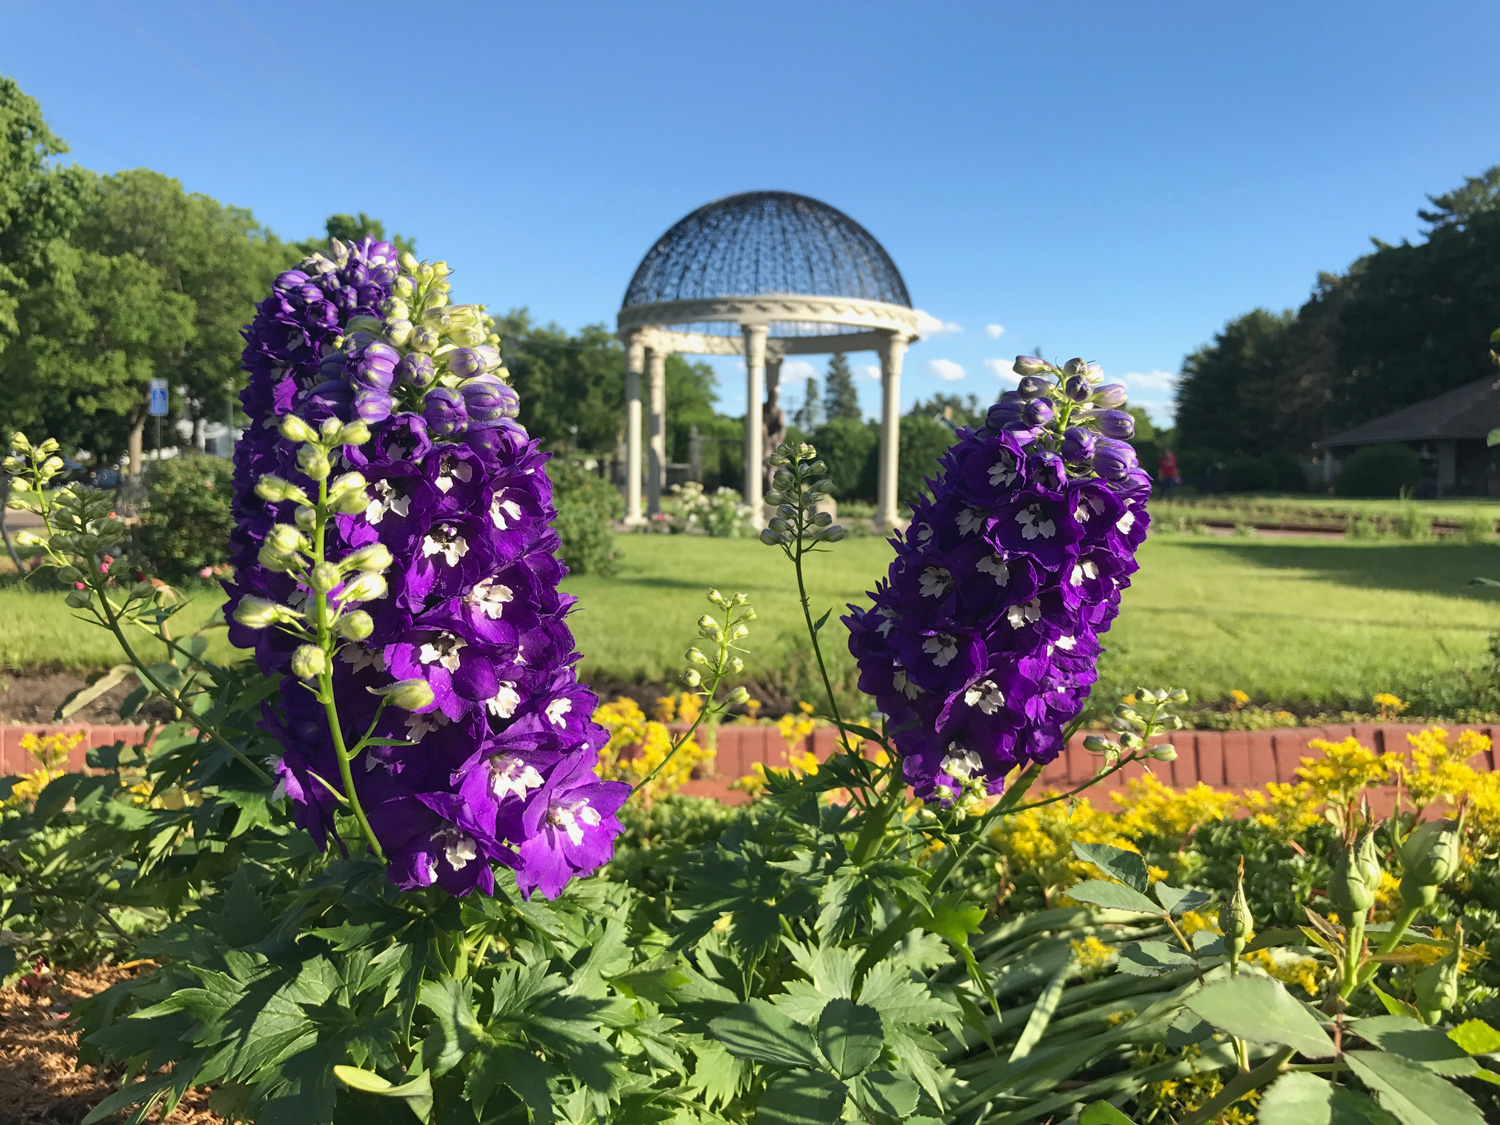 Quarry Shade Garden At Bon Air Park: 8 Great Things To Do In St. Cloud, Minnesota